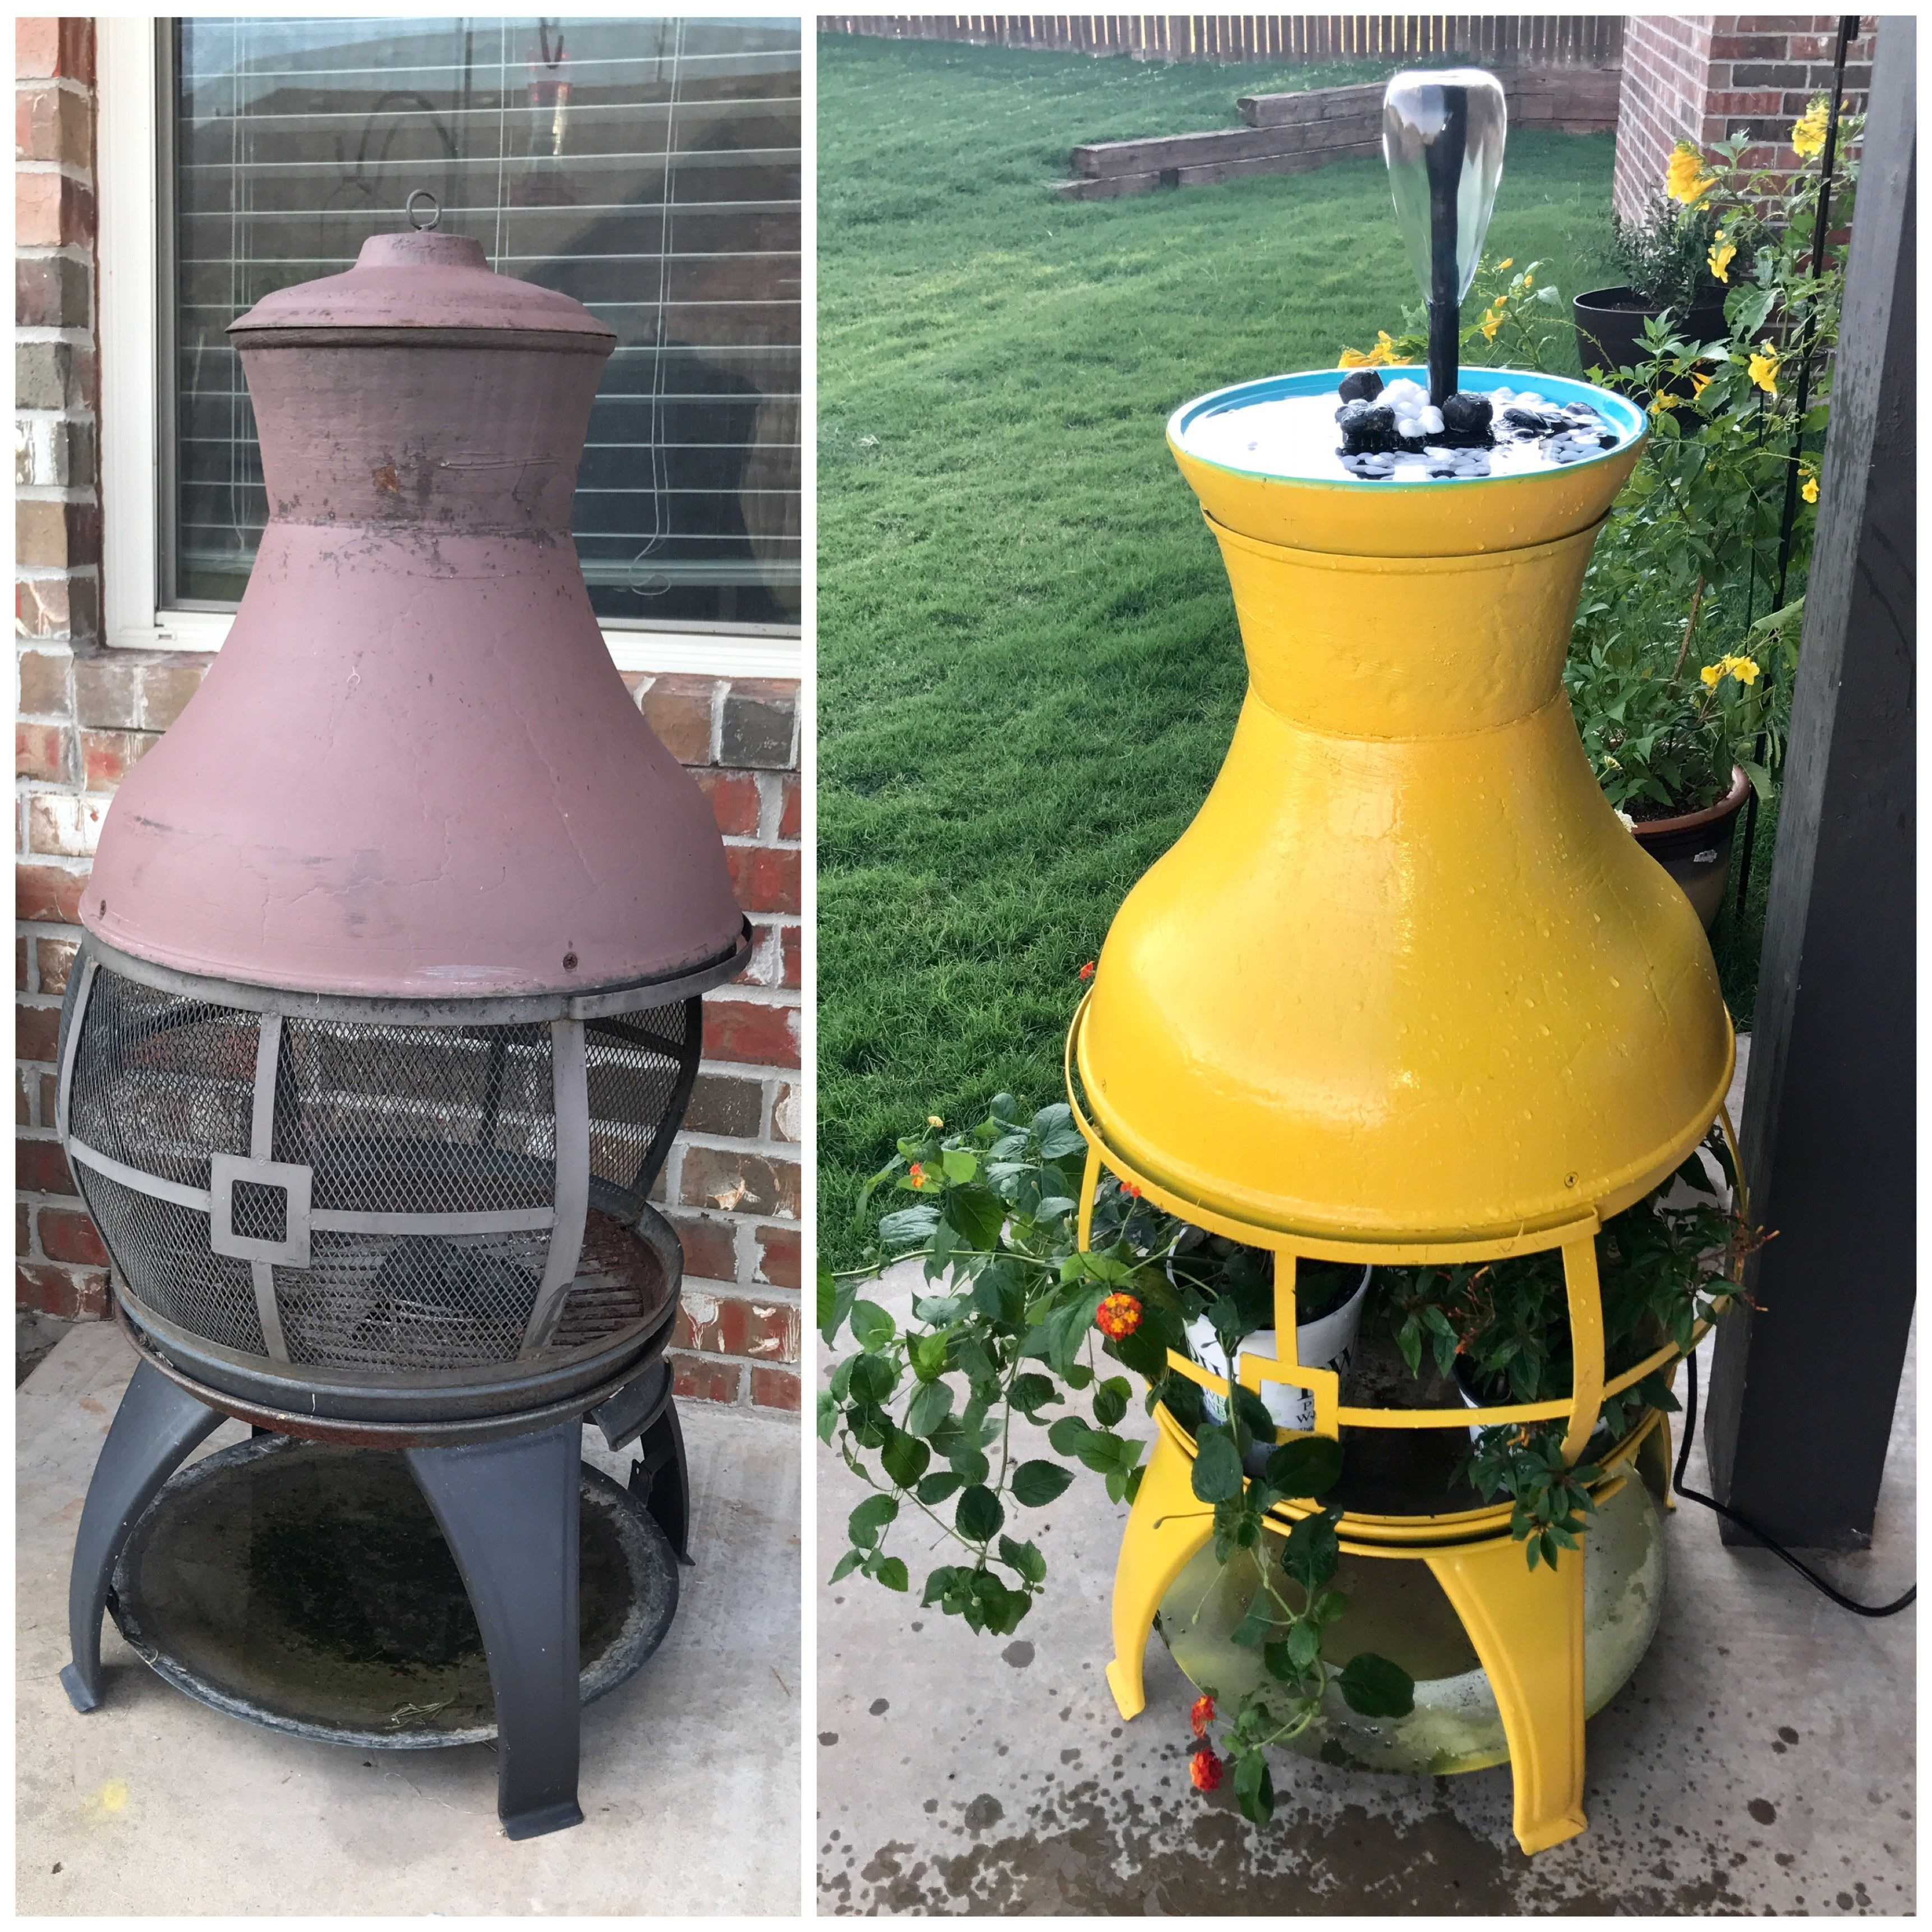 spray paint vase of decorative fireplace spray paint and terracotta chiminea outdoor with regard to decorative fireplace spray paint and terracotta chiminea outdoor fireplace inspirational some spray paint